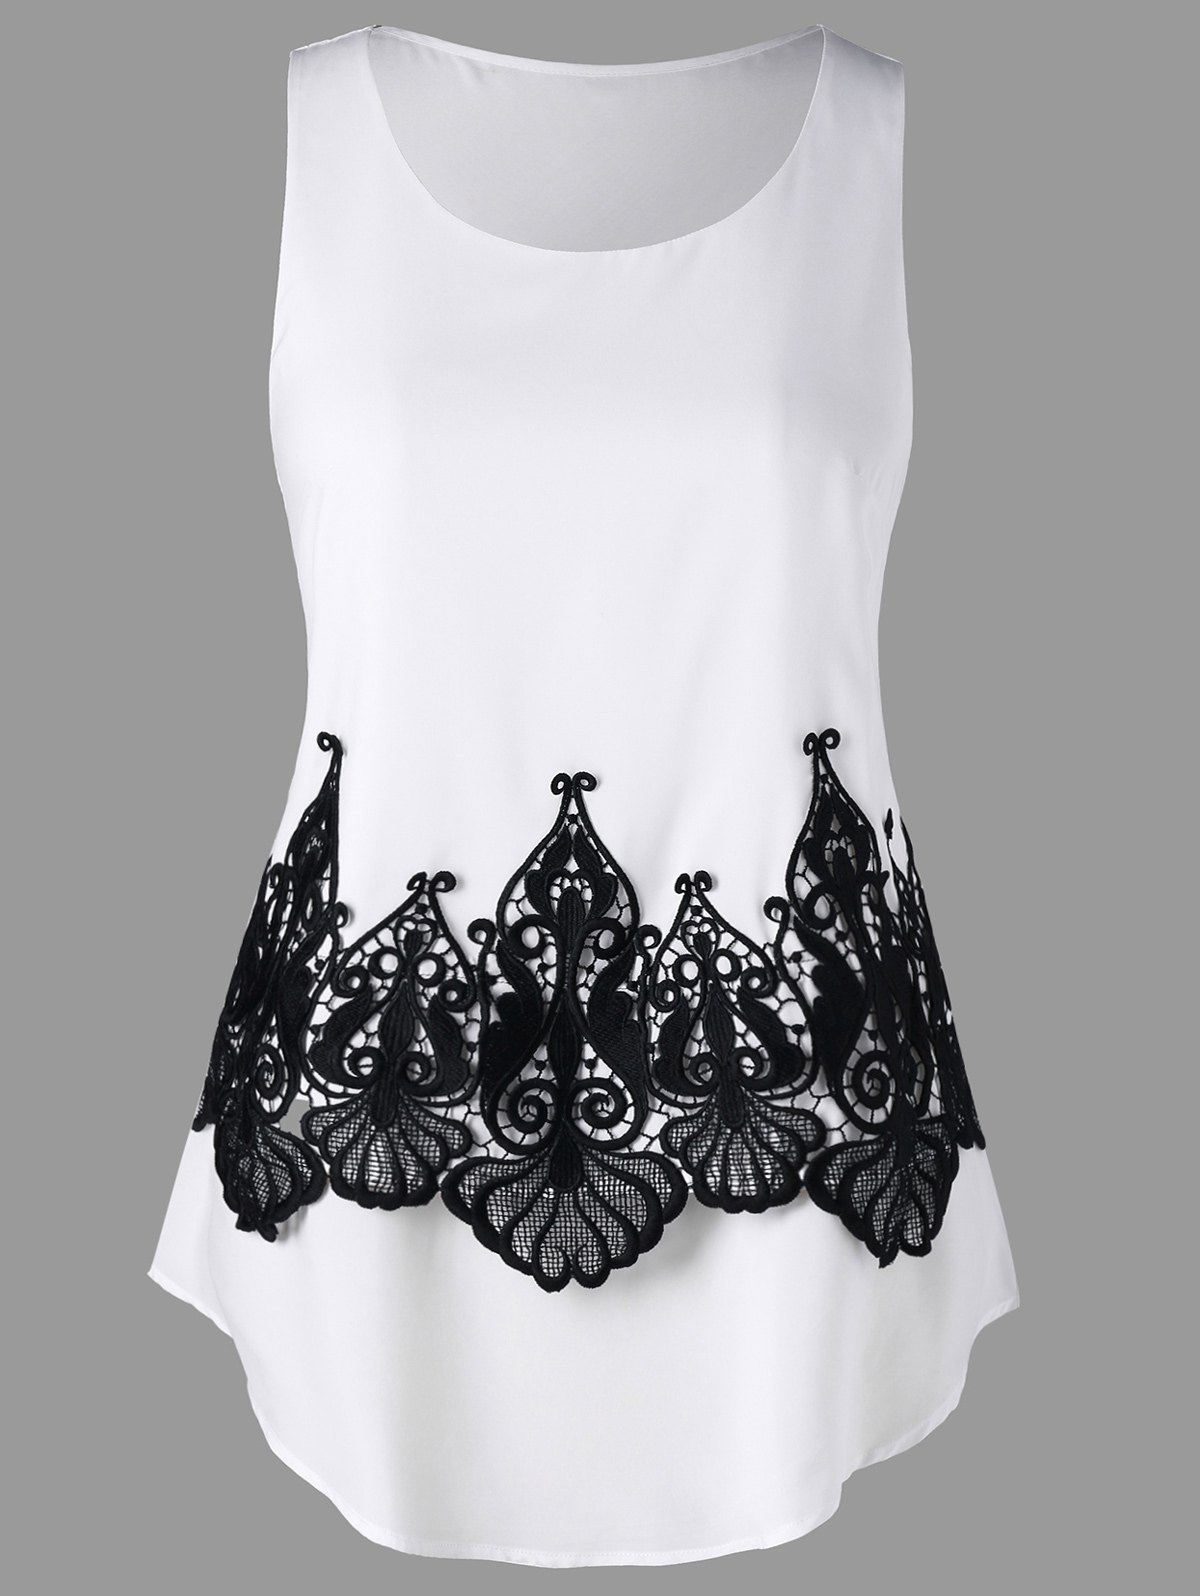 b06b820f0927f4 2019 Hollow Out Lace Embellished Tank Top